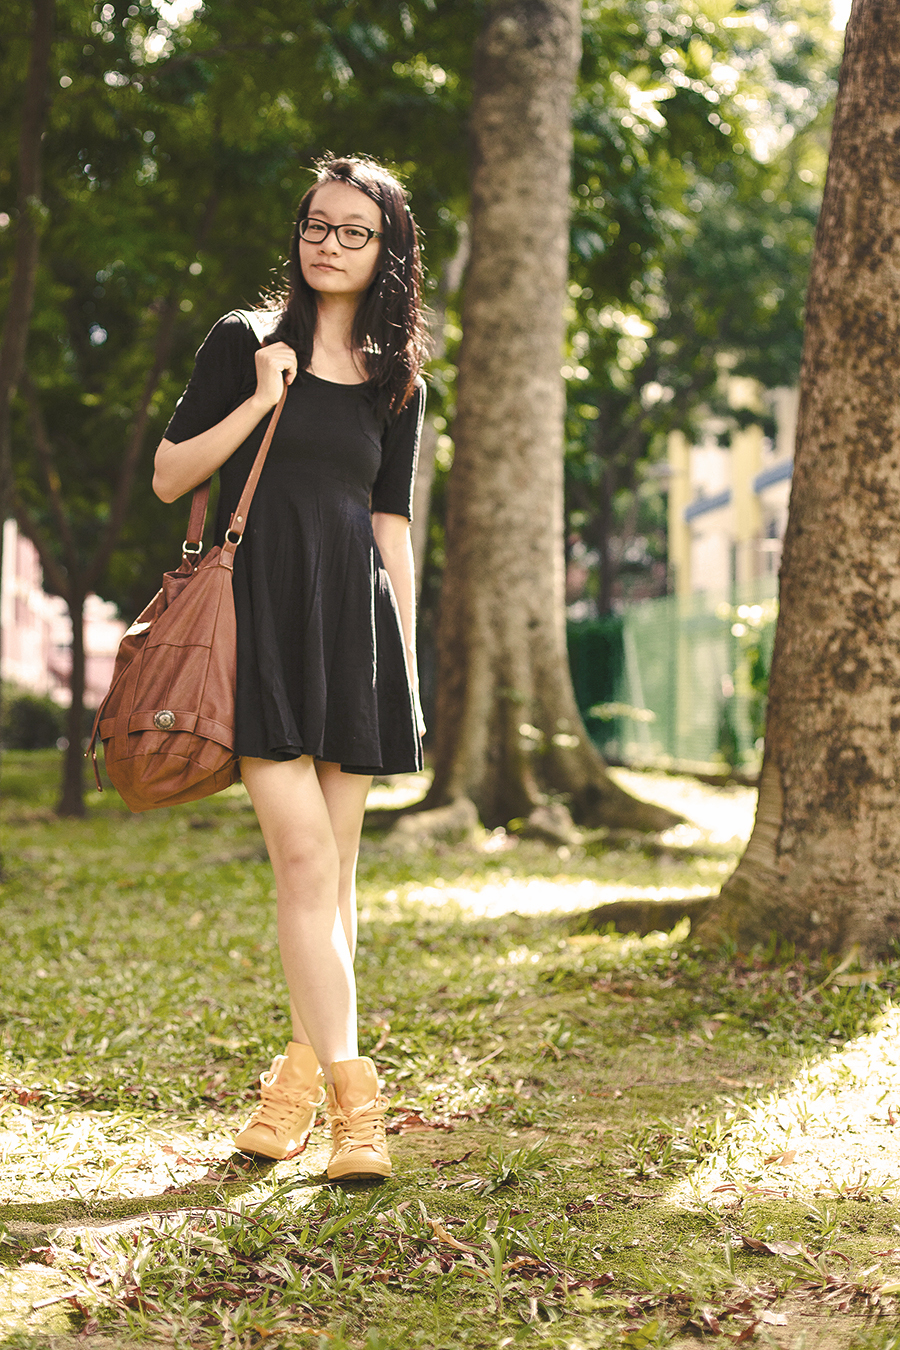 Summer outfit details: Forever 21 little black scoop back dress, Gentle Fawn brown leather sling bag, Converse All star Chuck Taylor yellow Rubber Coated Sneakers, Gap black frame glasses.